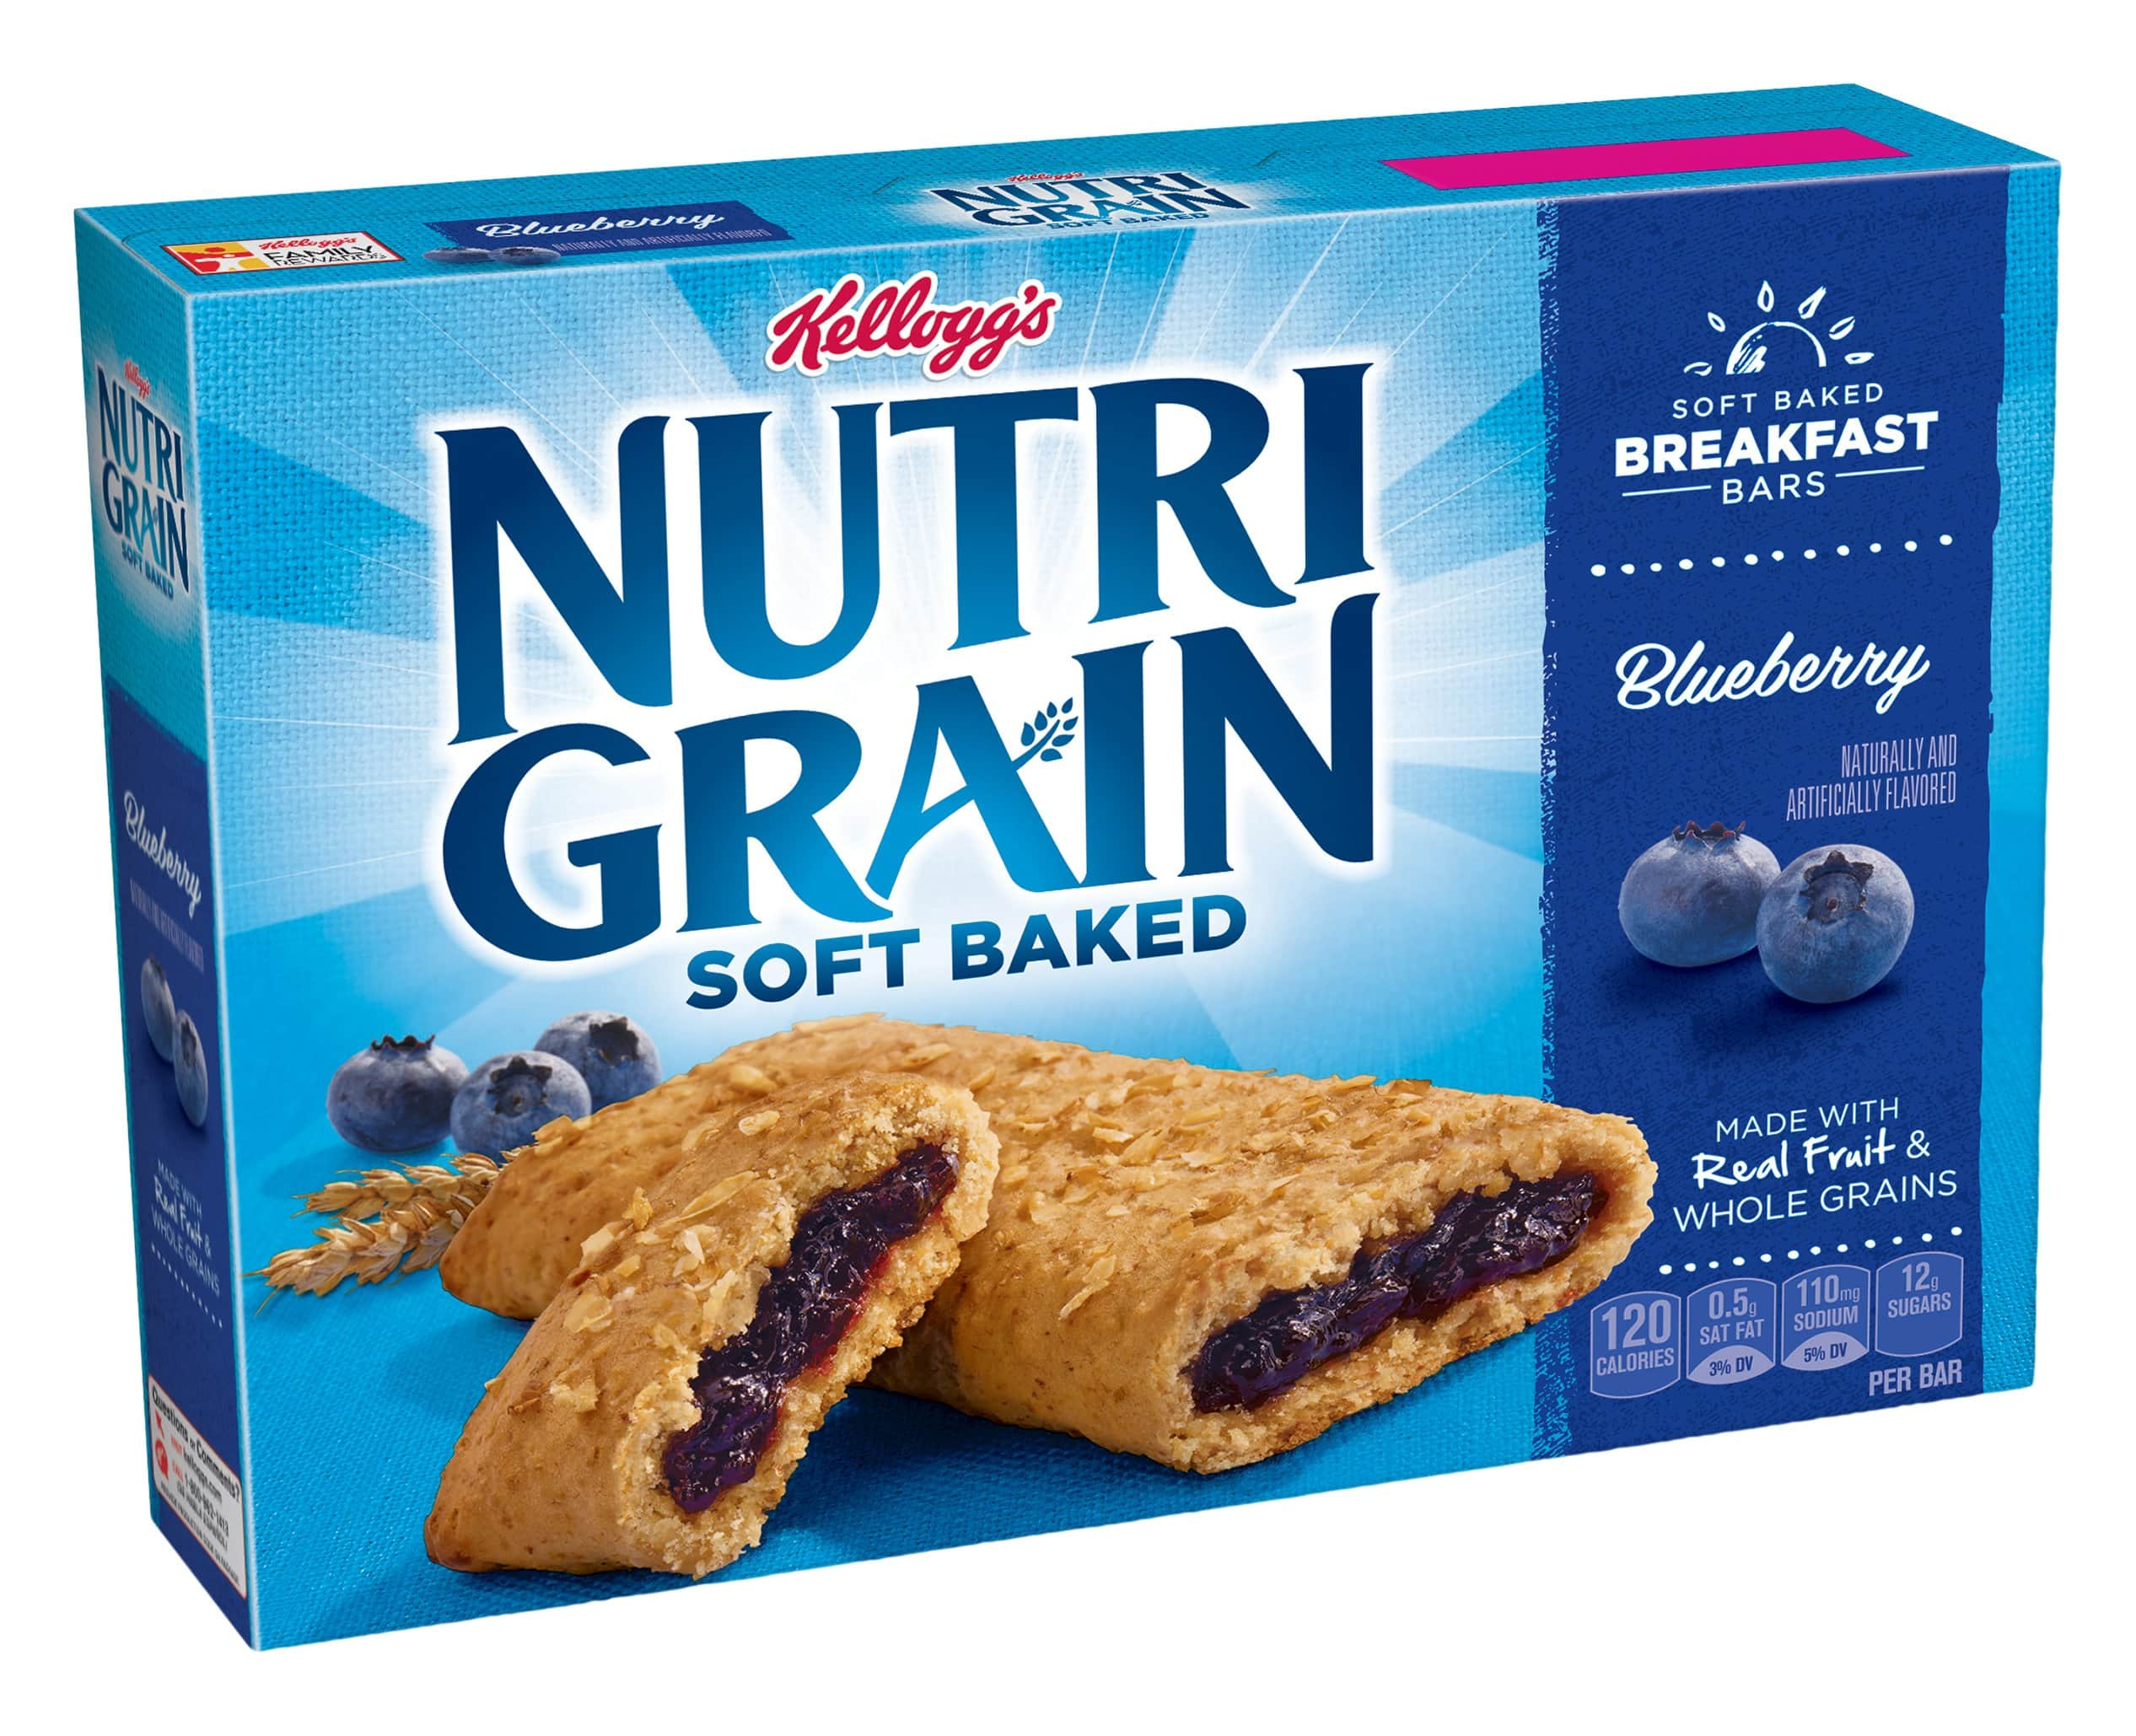 48 Kellogg's Nutri-Grain Cereal Bars (Three 16-Packs) - Strawberry $9.32